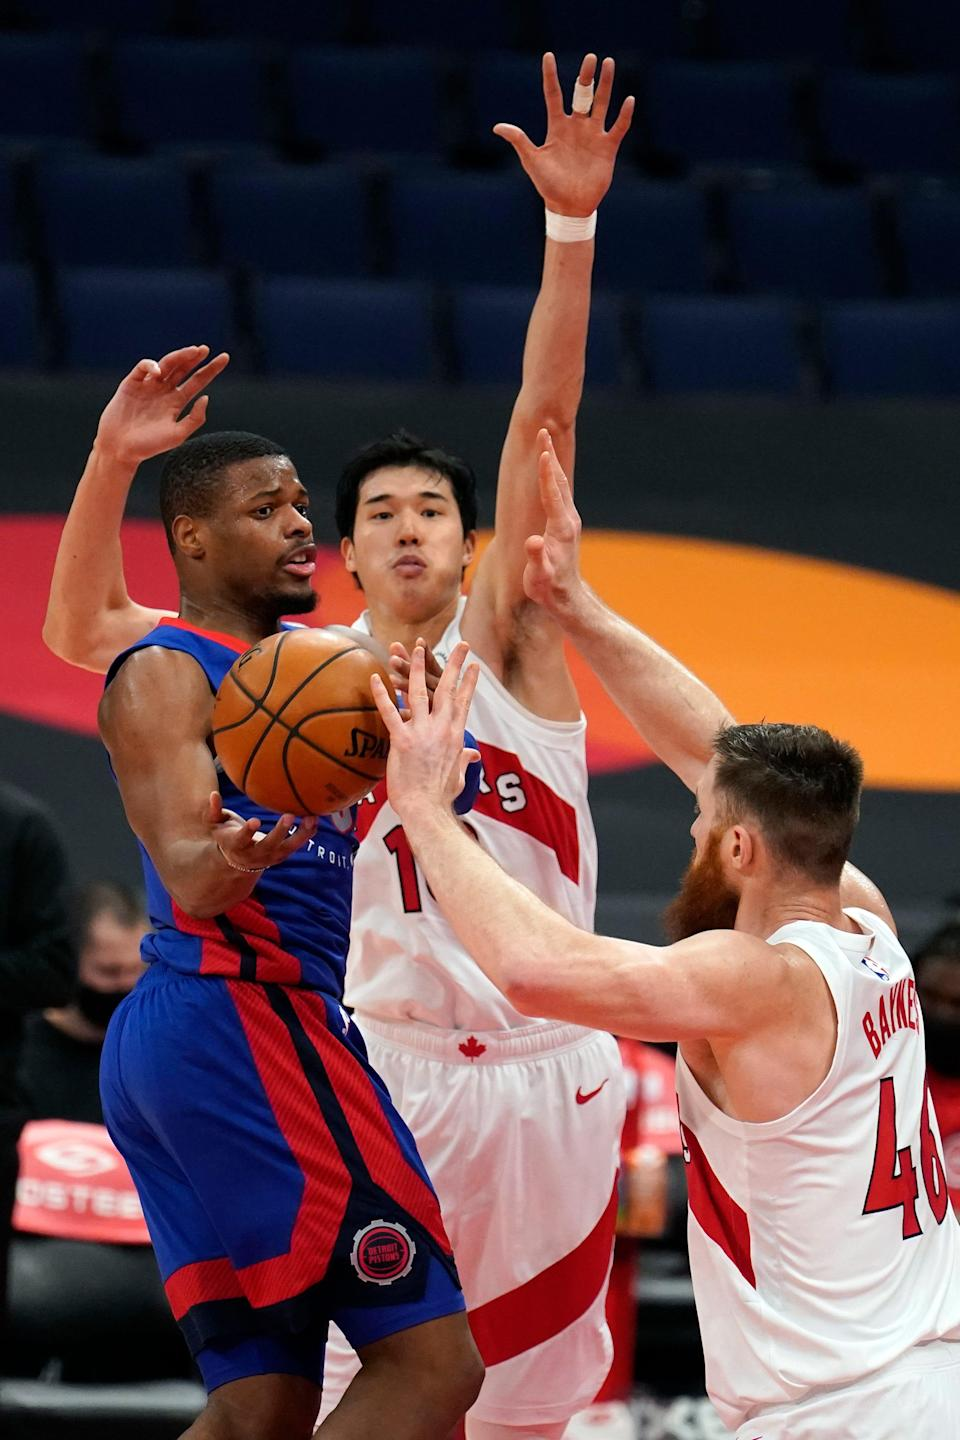 Pistons guard Dennis Smith Jr. loses the ball as he tries to get around Raptors forward Yuta Watanabe, center, and center Aron Baynes during the first half in Tampa, Florida, on Wednesday, March 3, 2021.